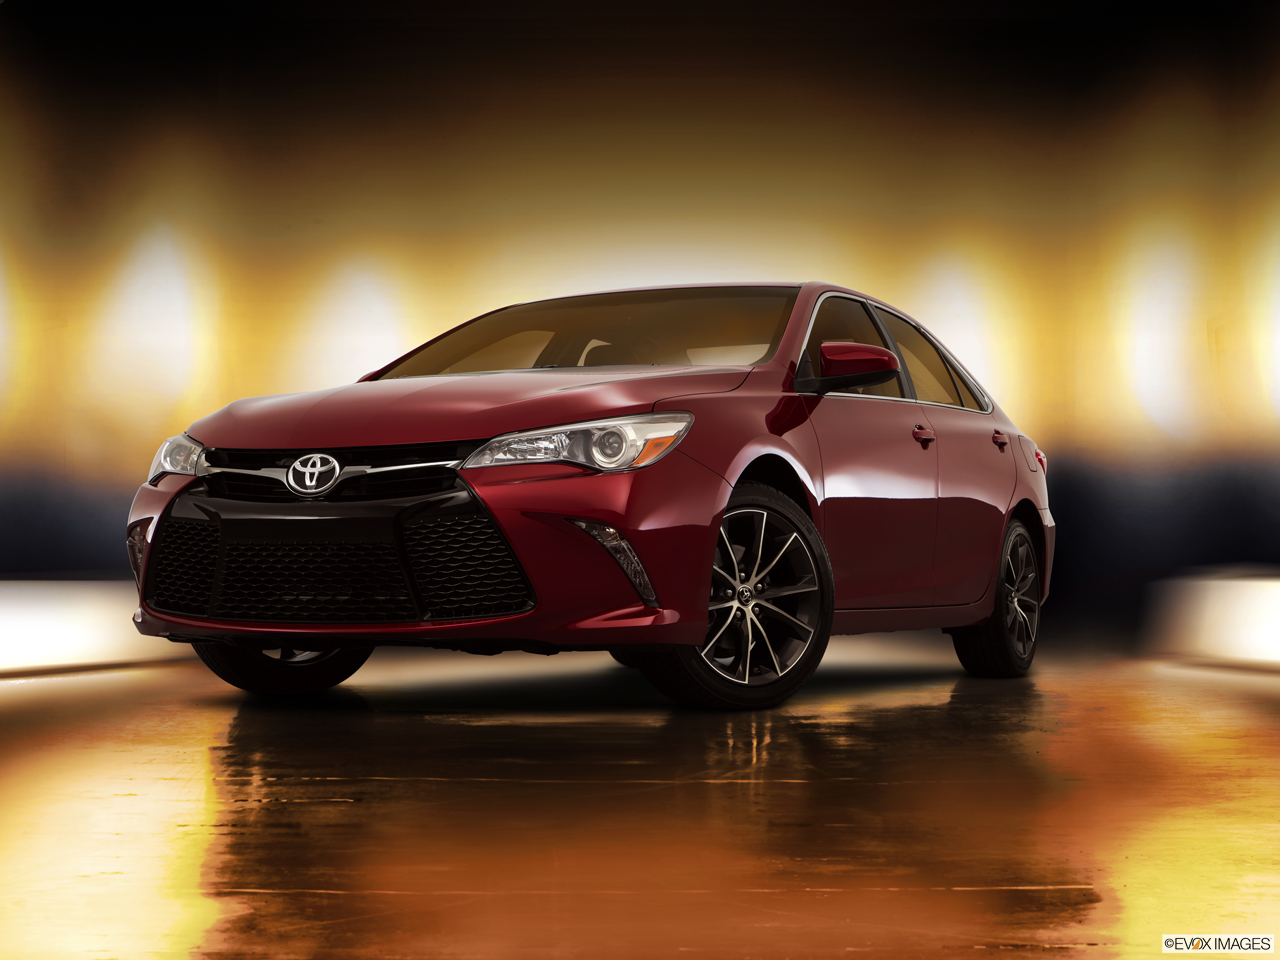 Exterior View Of 2017 Toyota Camry near San Diego